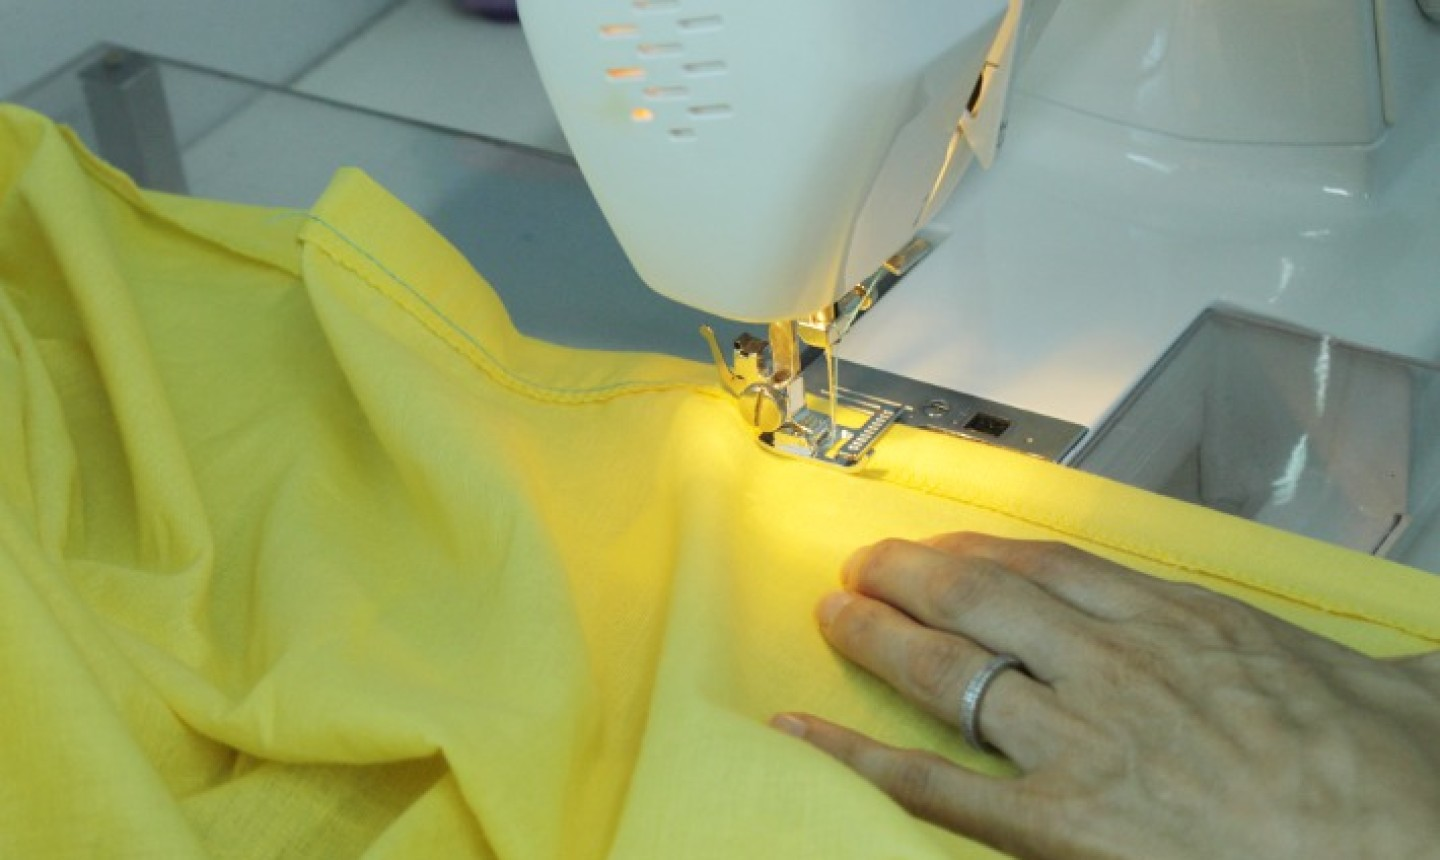 Sewing fabric with sewing machine